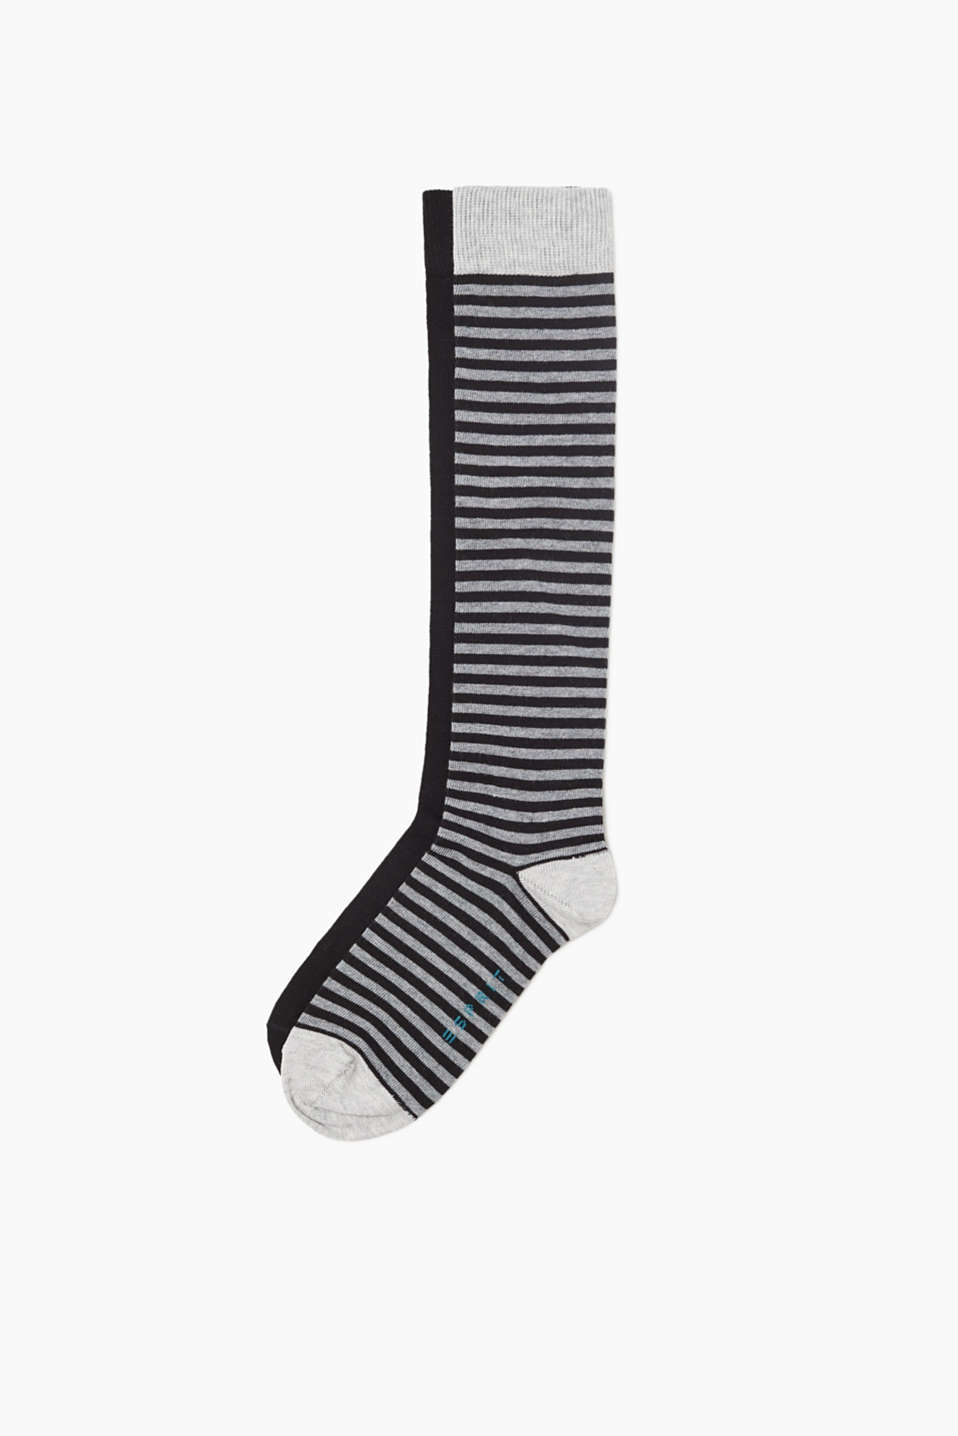 Esprit - Double pack of striped knee-high socks